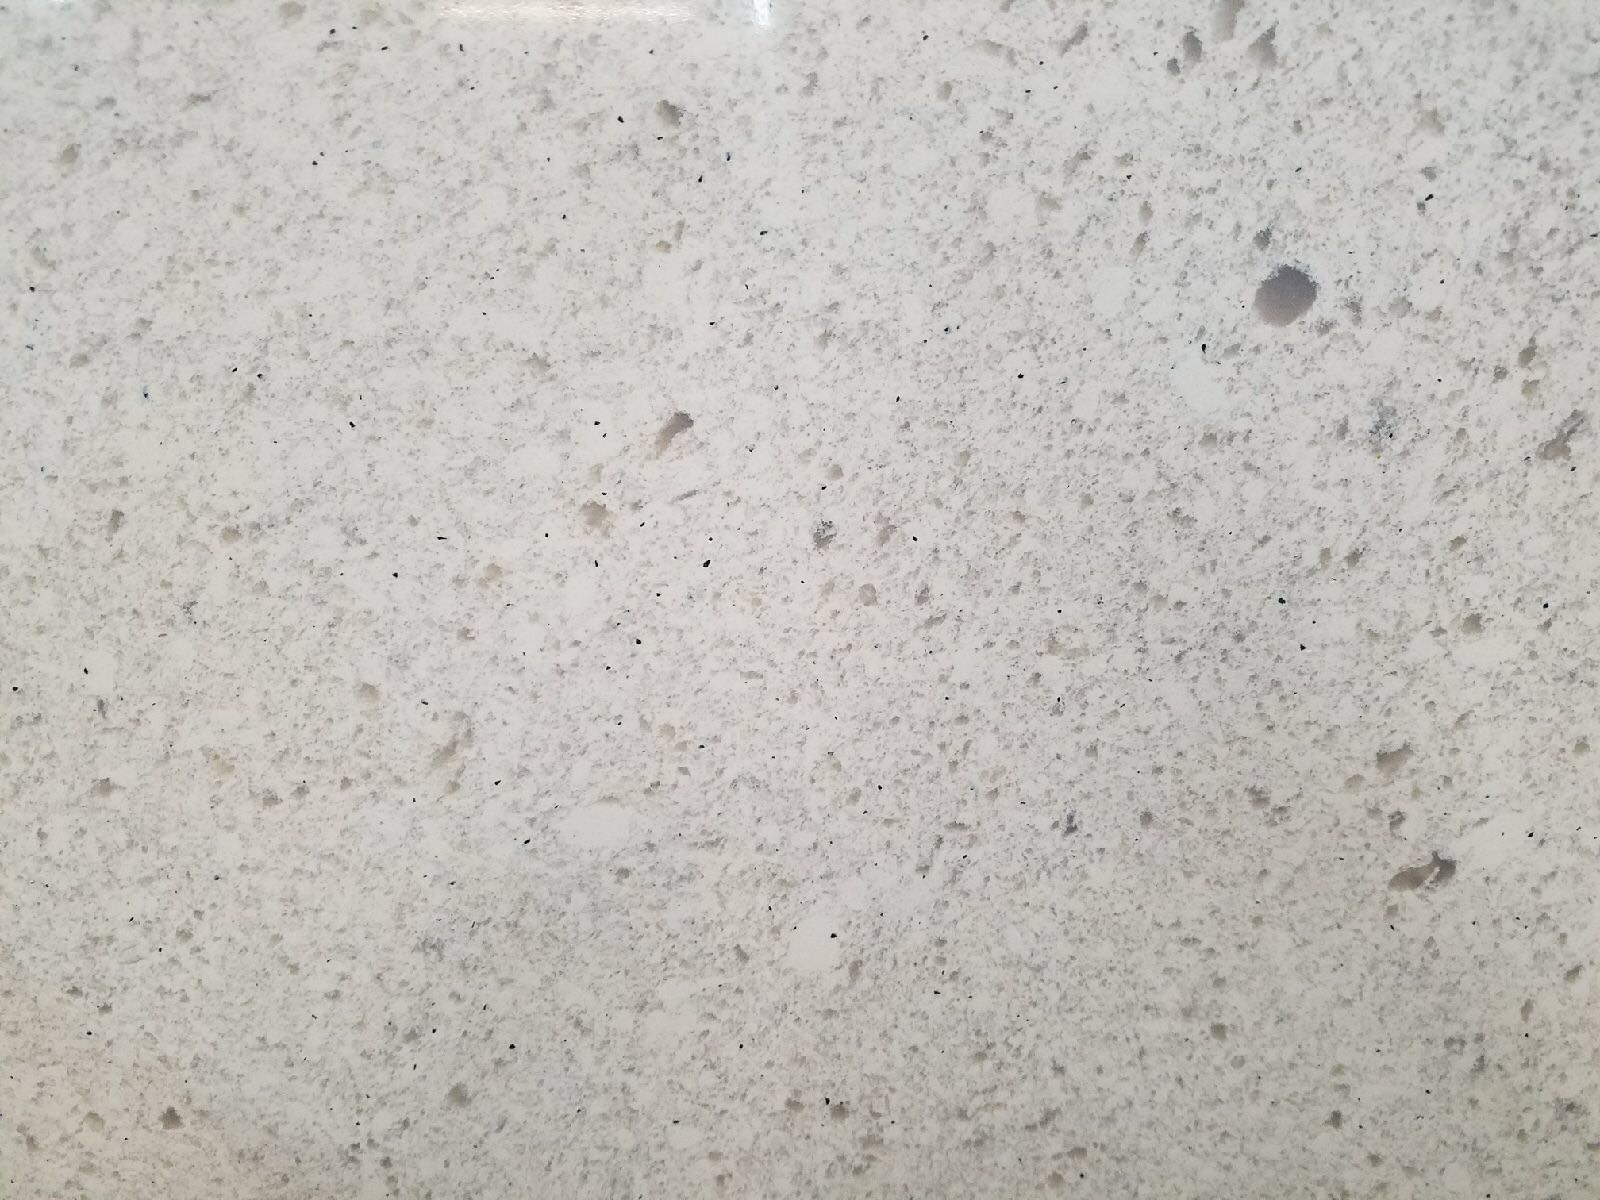 to kitchen countertopsc be sealing inspiration do countertop design need countertops i wondrous seal attractive polishing quartzite sealed quartz white